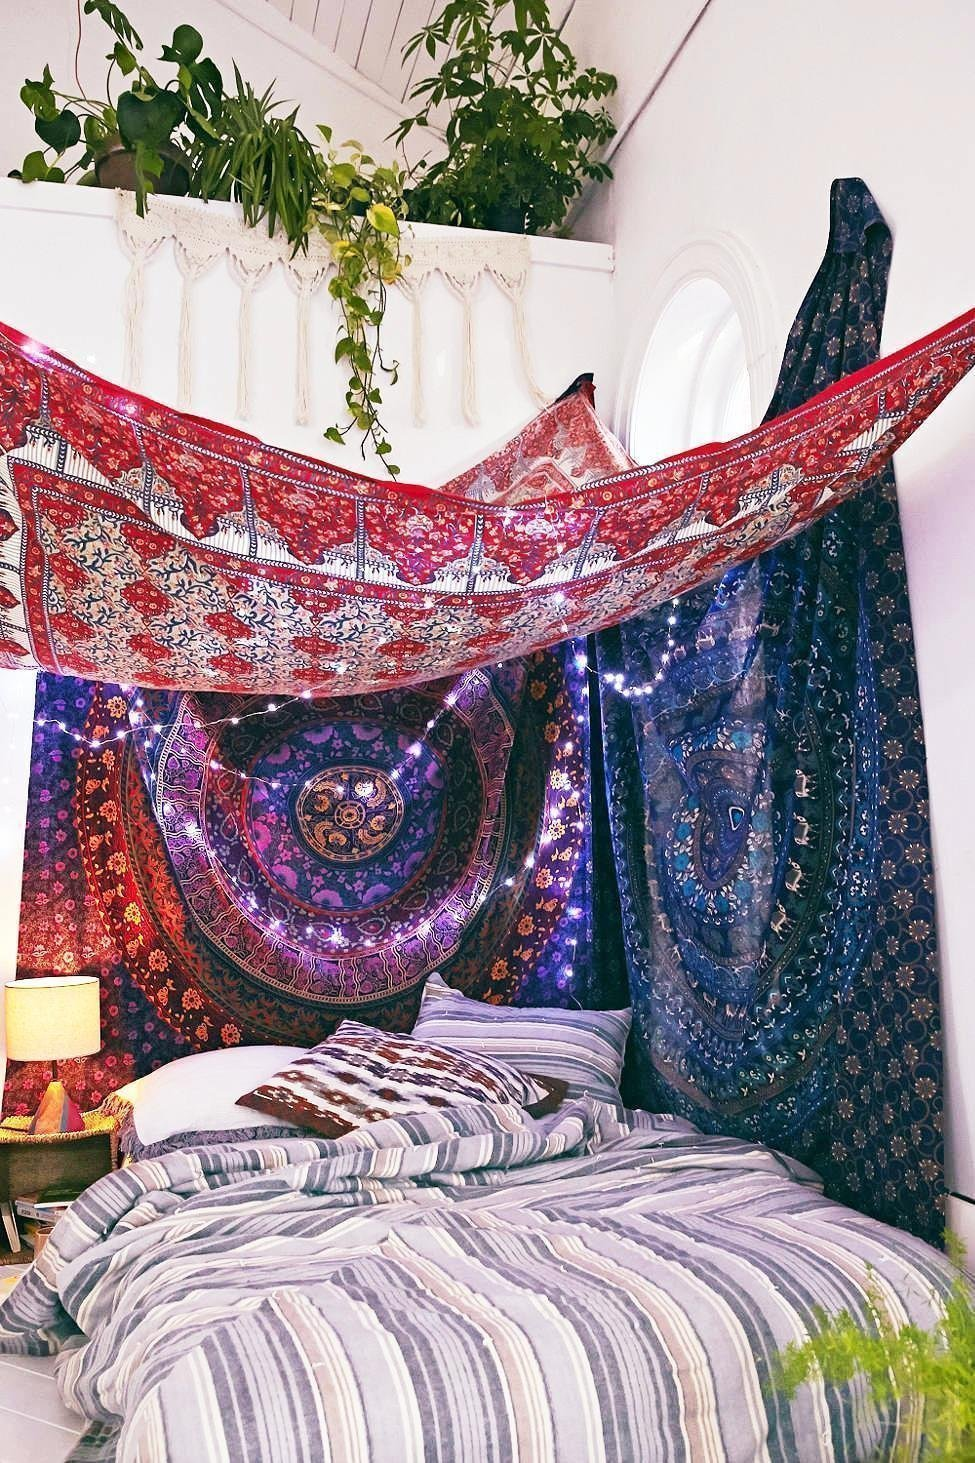 Amazing Amazon.com: Mandala Bohemian Wall Hanging Hippie Indian HeadBoard Hippie Tapestry  Bed Sheet ,Bed Throw , Cotton Bedding , Bed Cover: Handmade